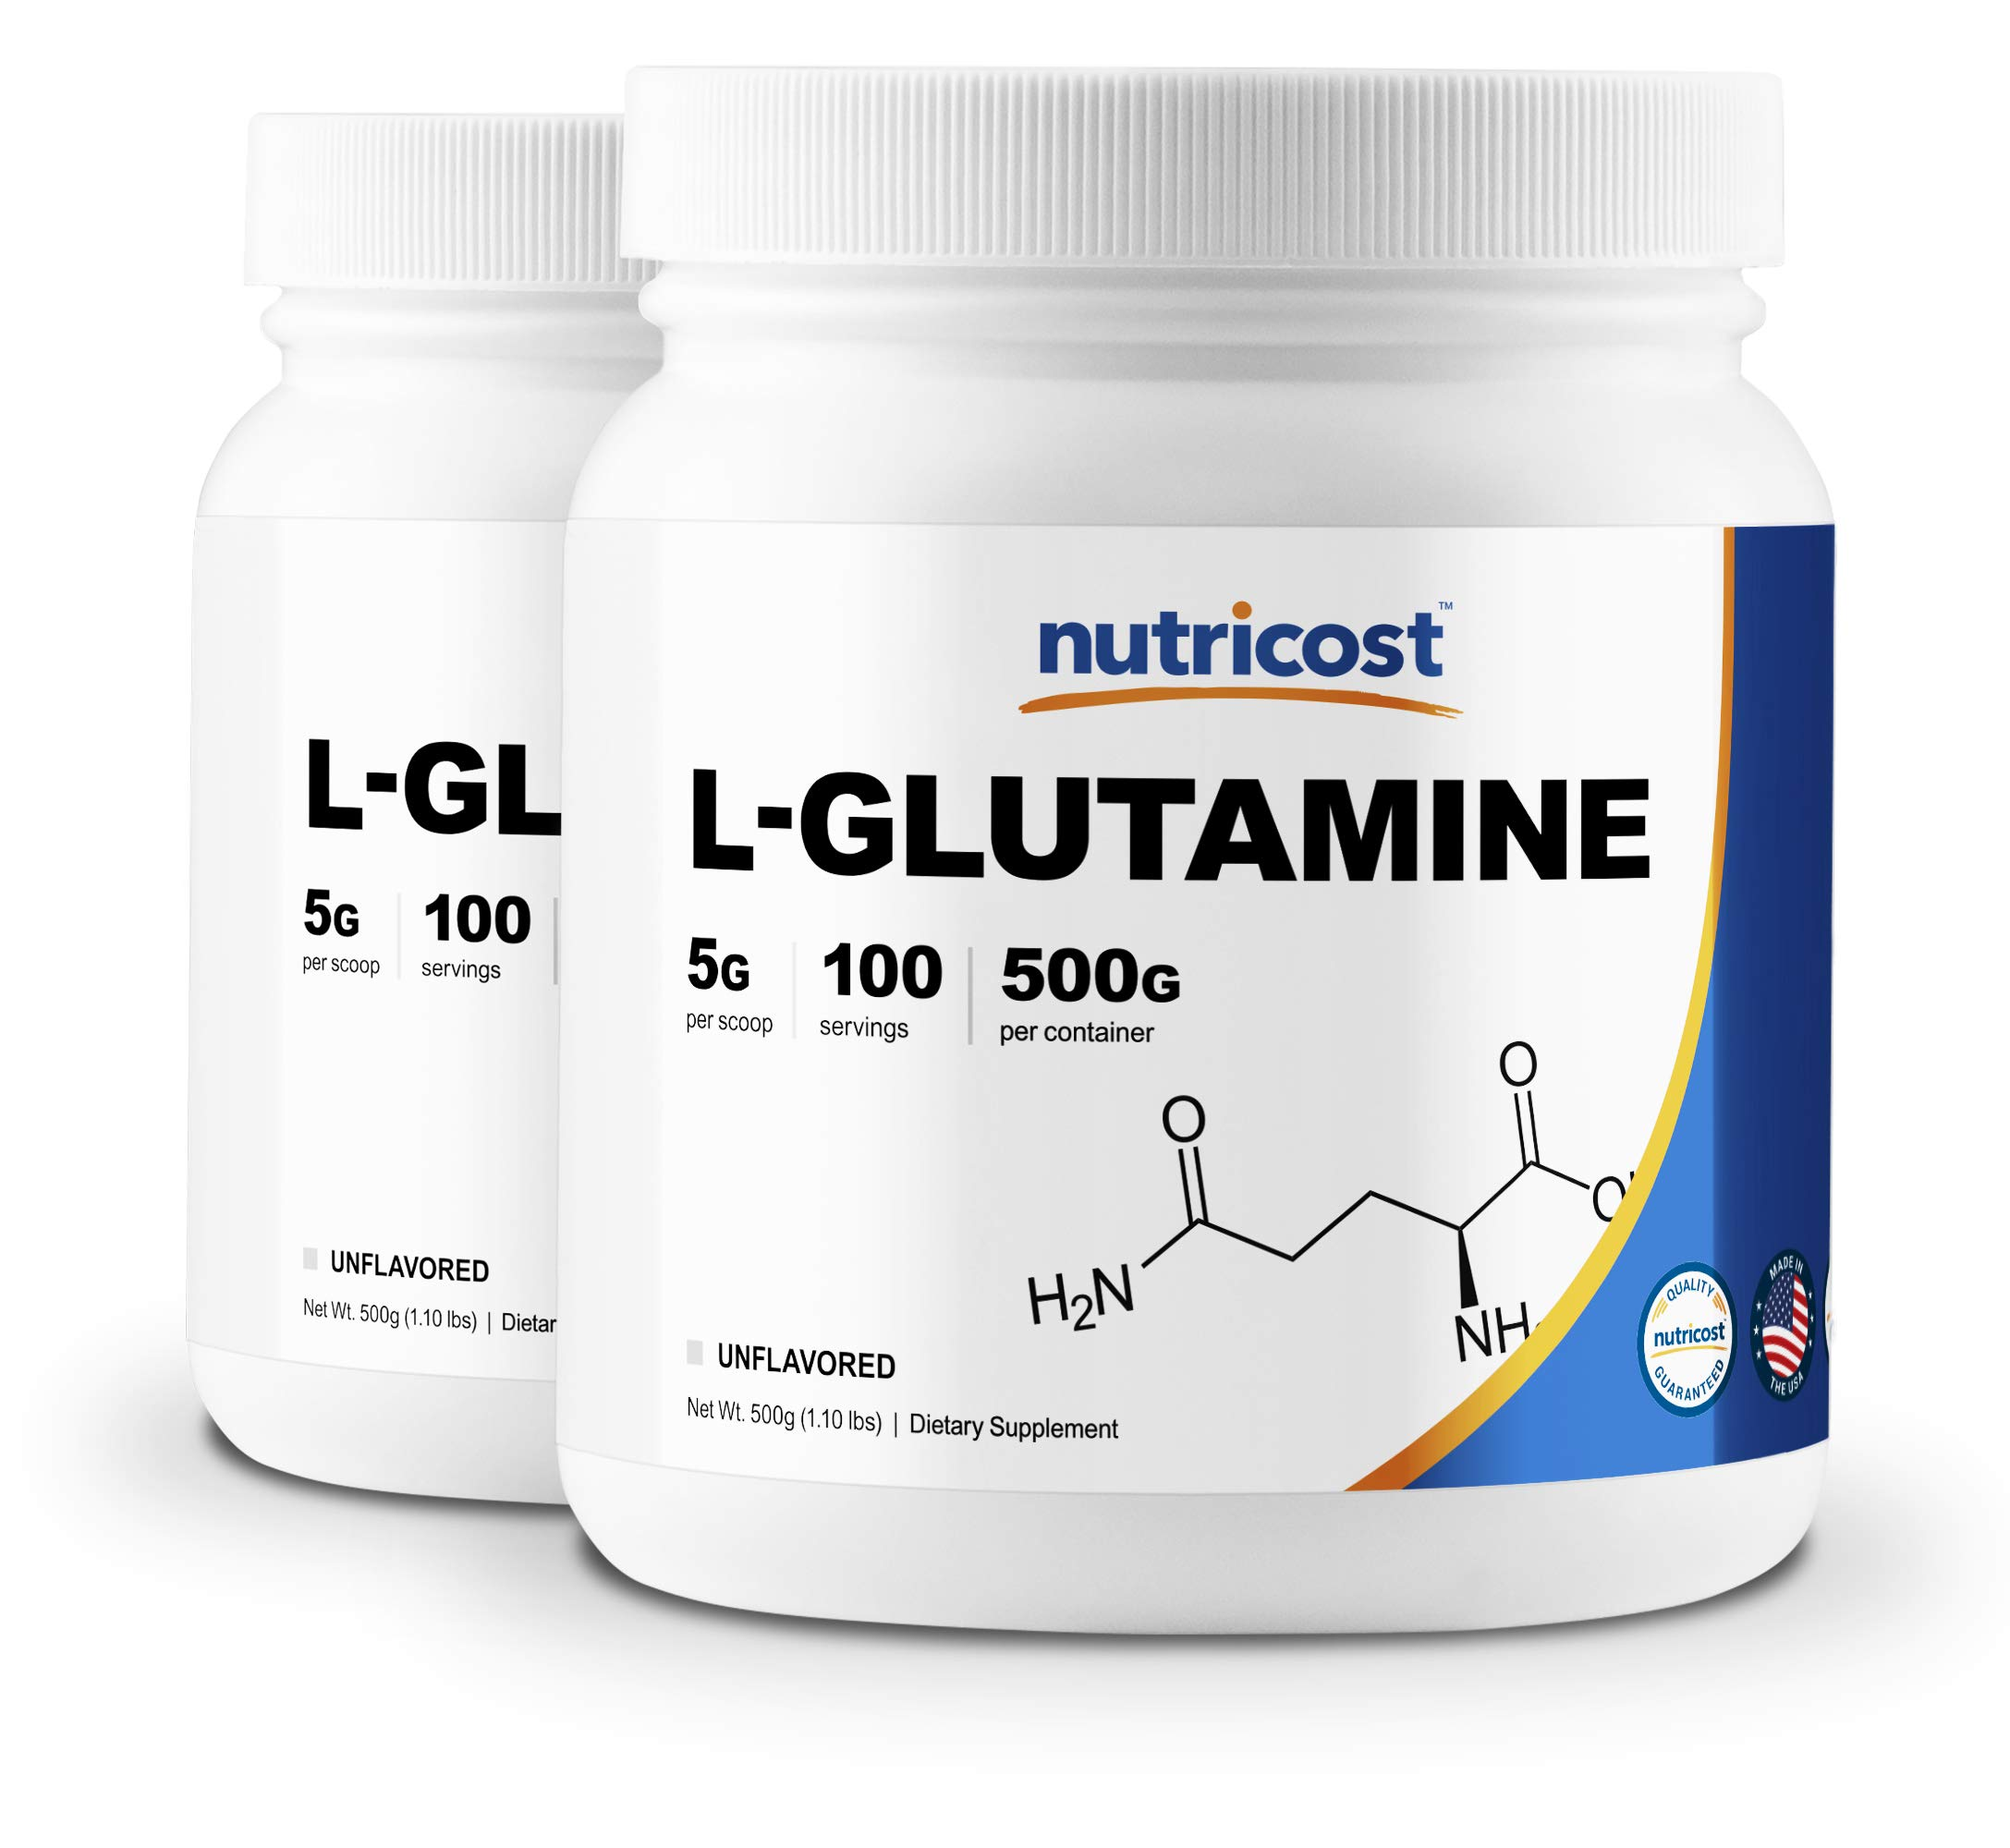 Nutricost L-Glutamine Powder 500G (2 Pack) - Pure L Glutamine - 5000mg Per Serving - 1.1 Pounds & 100 Servings Each - Highest Purity